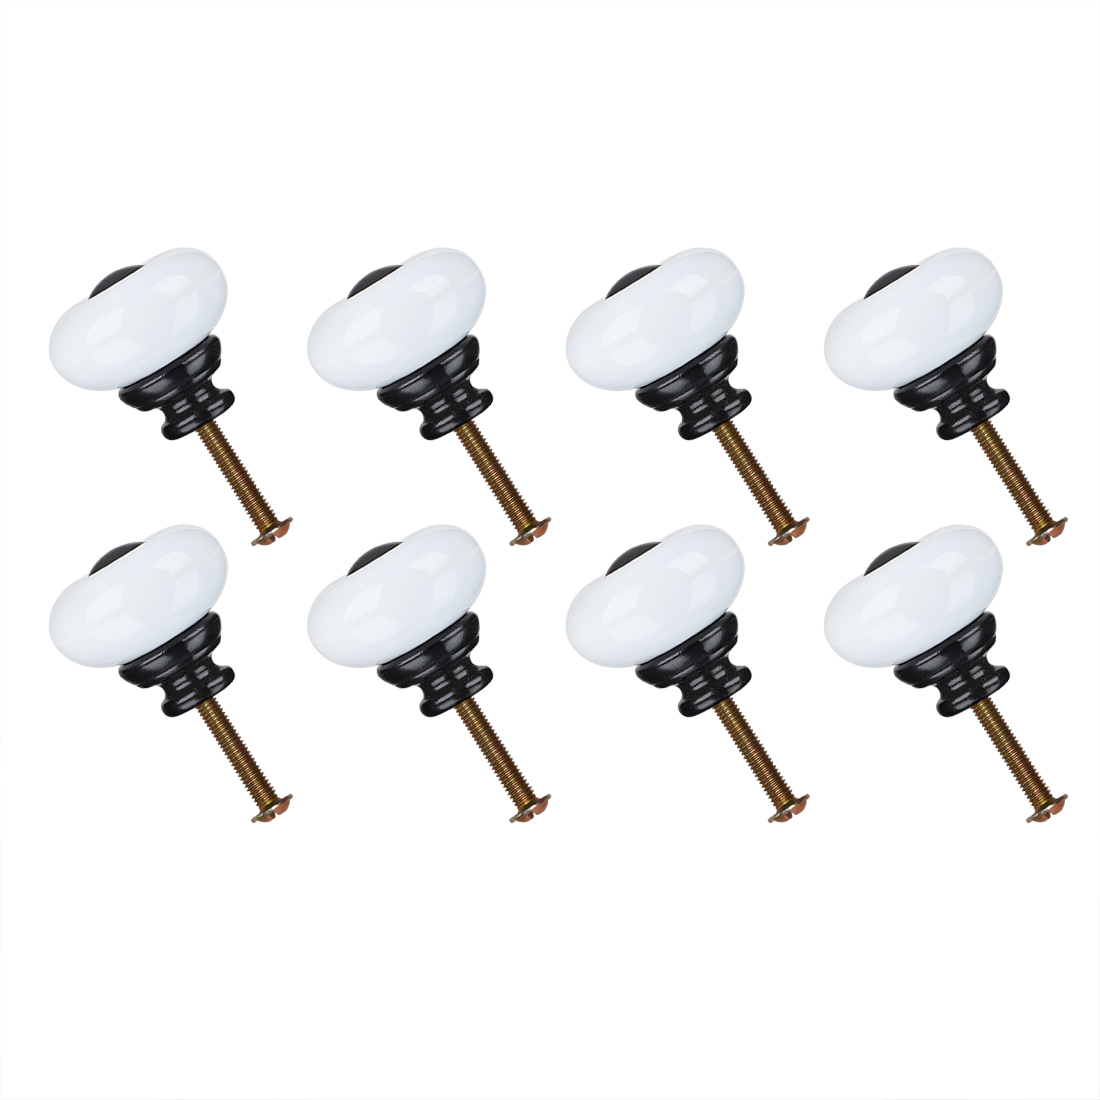 Ceramic Knob Pull Handle Furniture Dresser Wardrobe Cabinet Accessory 8pcs White